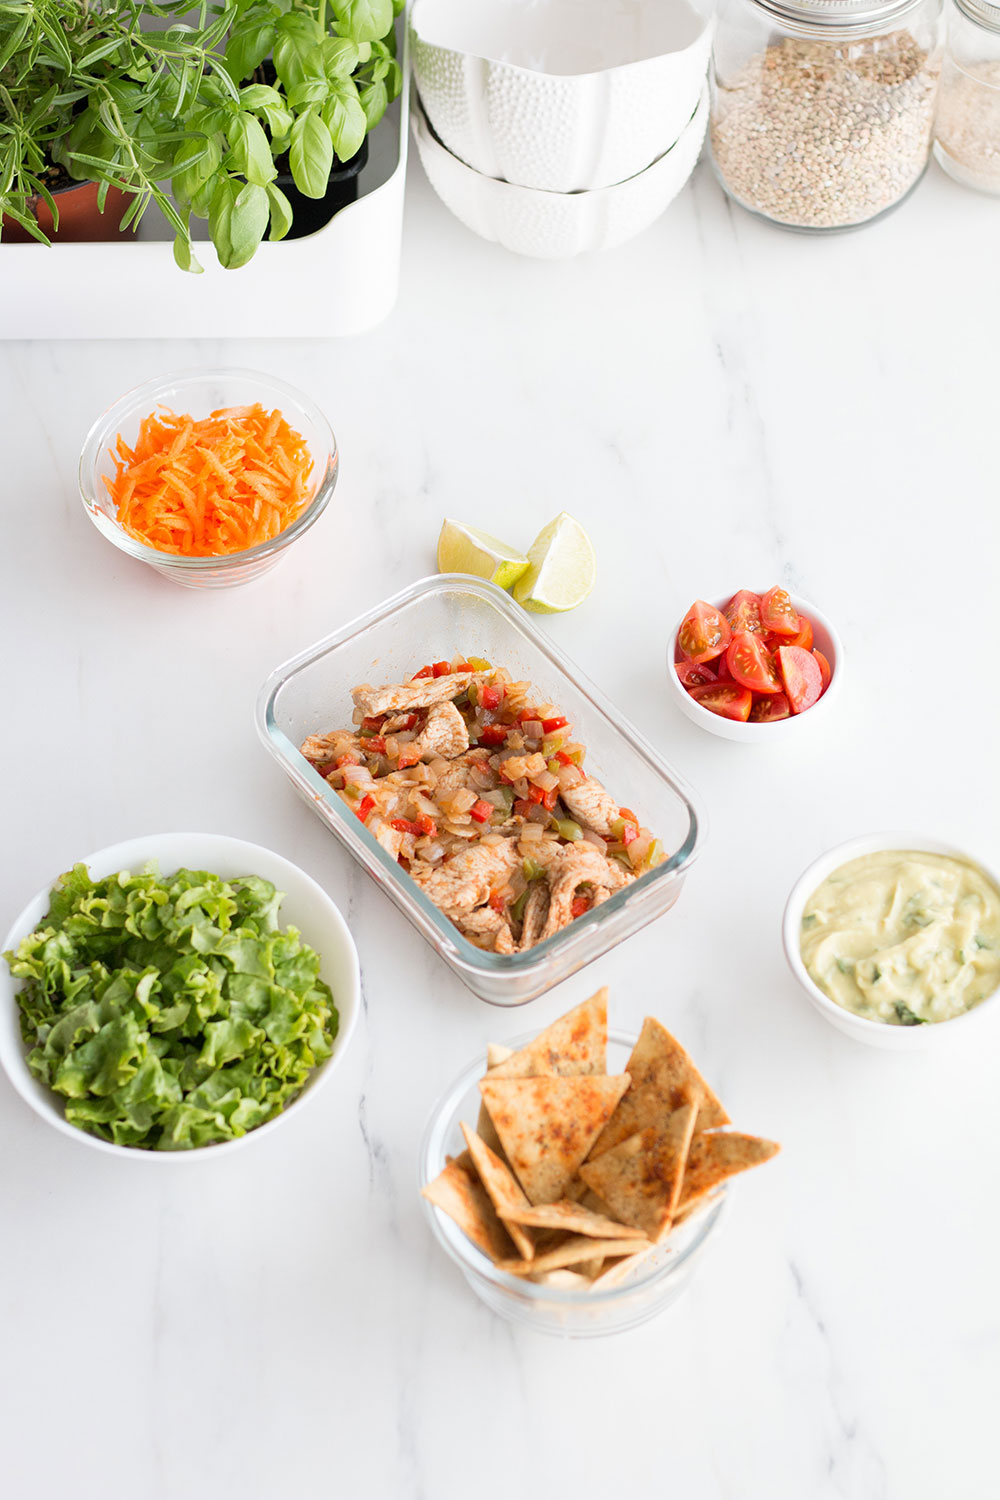 Mexican Turkey Stir-Fry Recipe: A high-protein, low-calorie filling for tacos, tostadas, burritos, and enchiladas! https://www.spotebi.com/recipes/mexican-turkey-stir-fry/